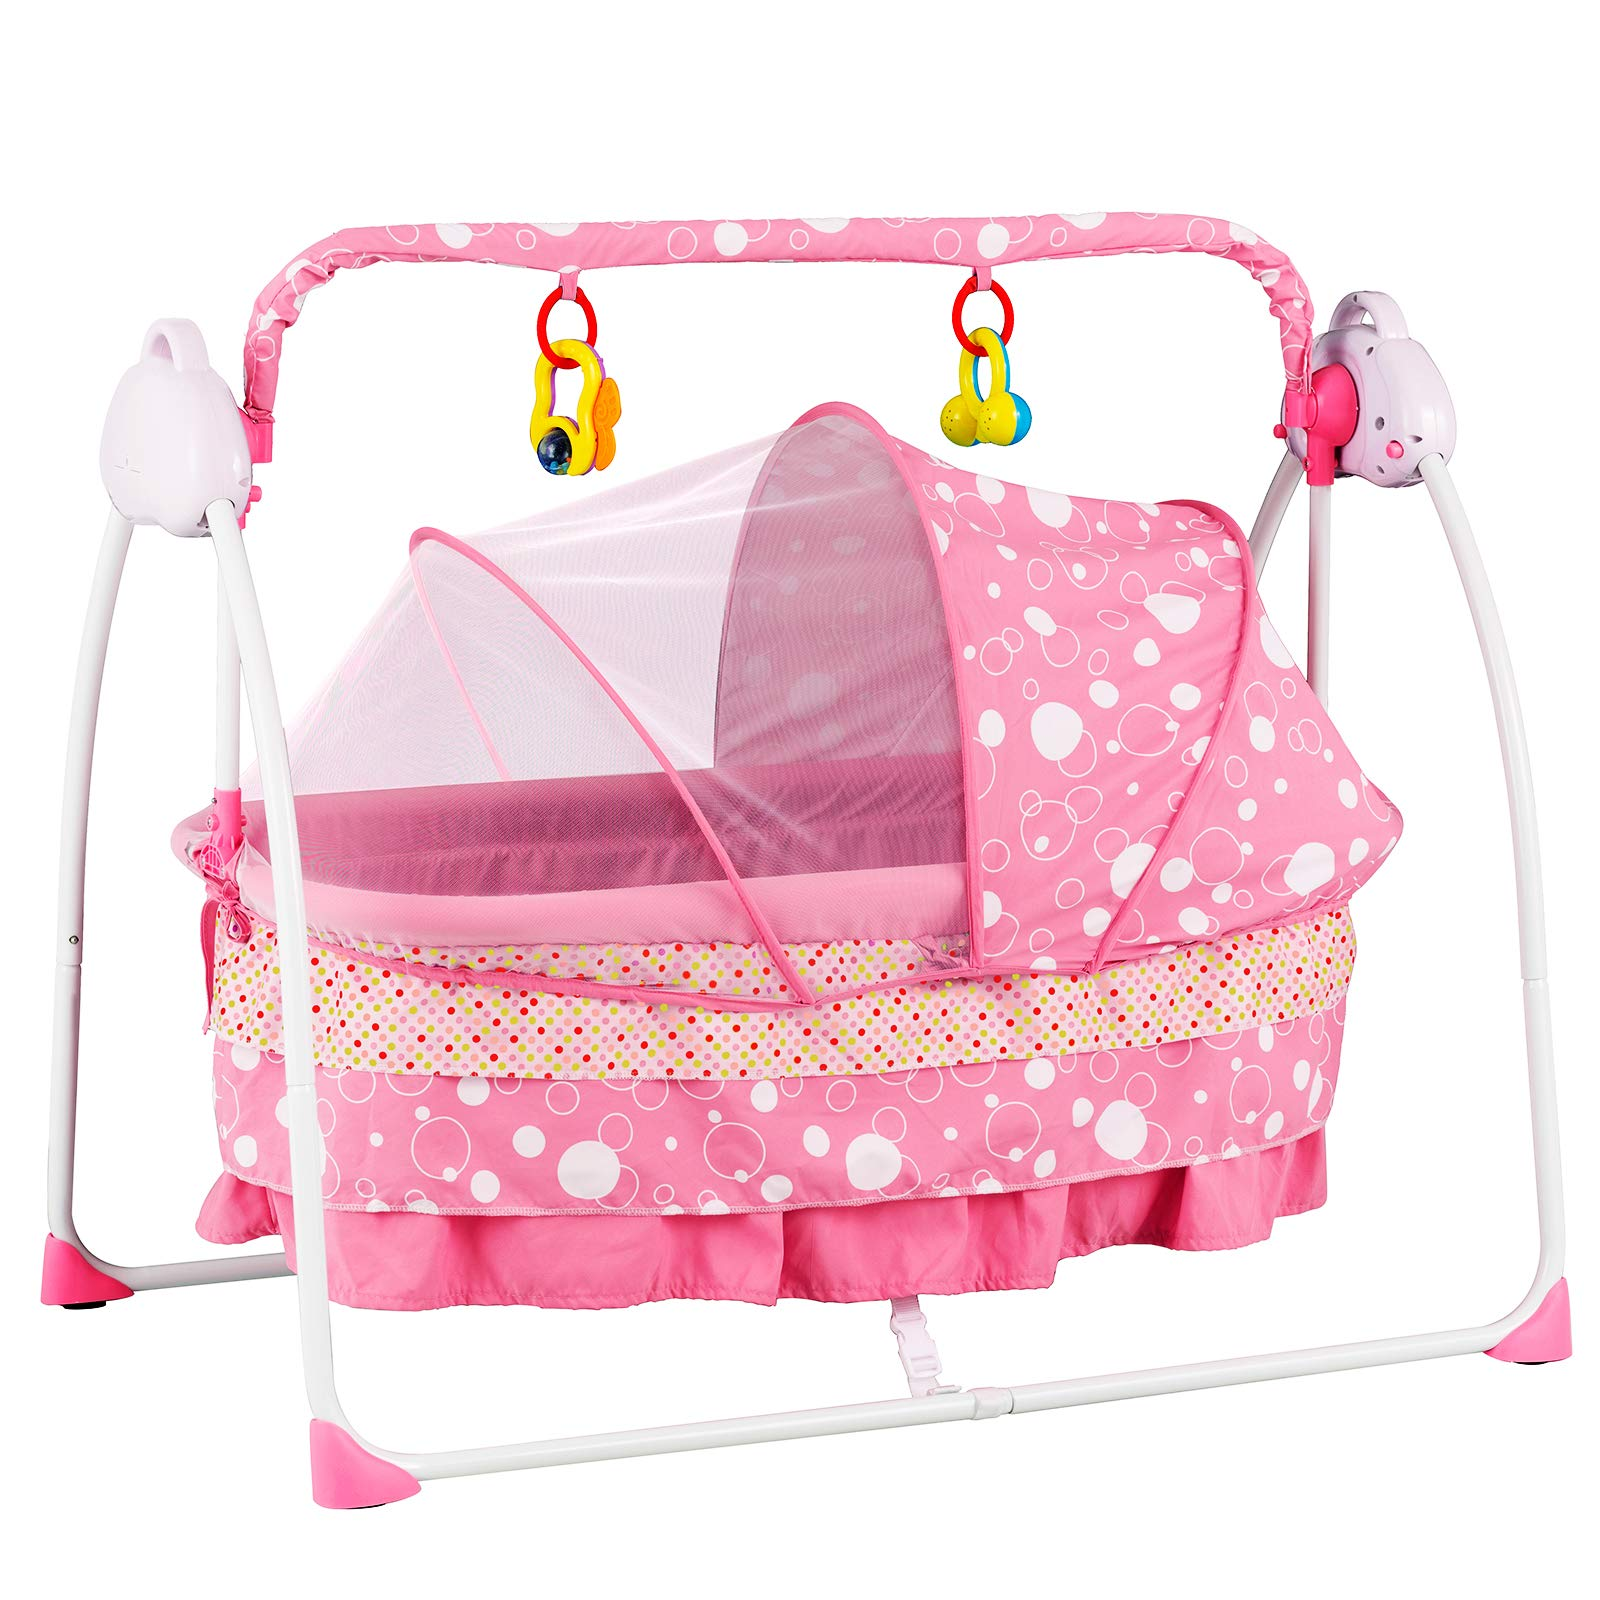 Uenjoy Automatic Baby Basket Electric Rocking Multifunction Baby Swing Cradle Bed,Remote or Panel Control, Music, Timing, Adjustable Speed, Pink by Uenjoy